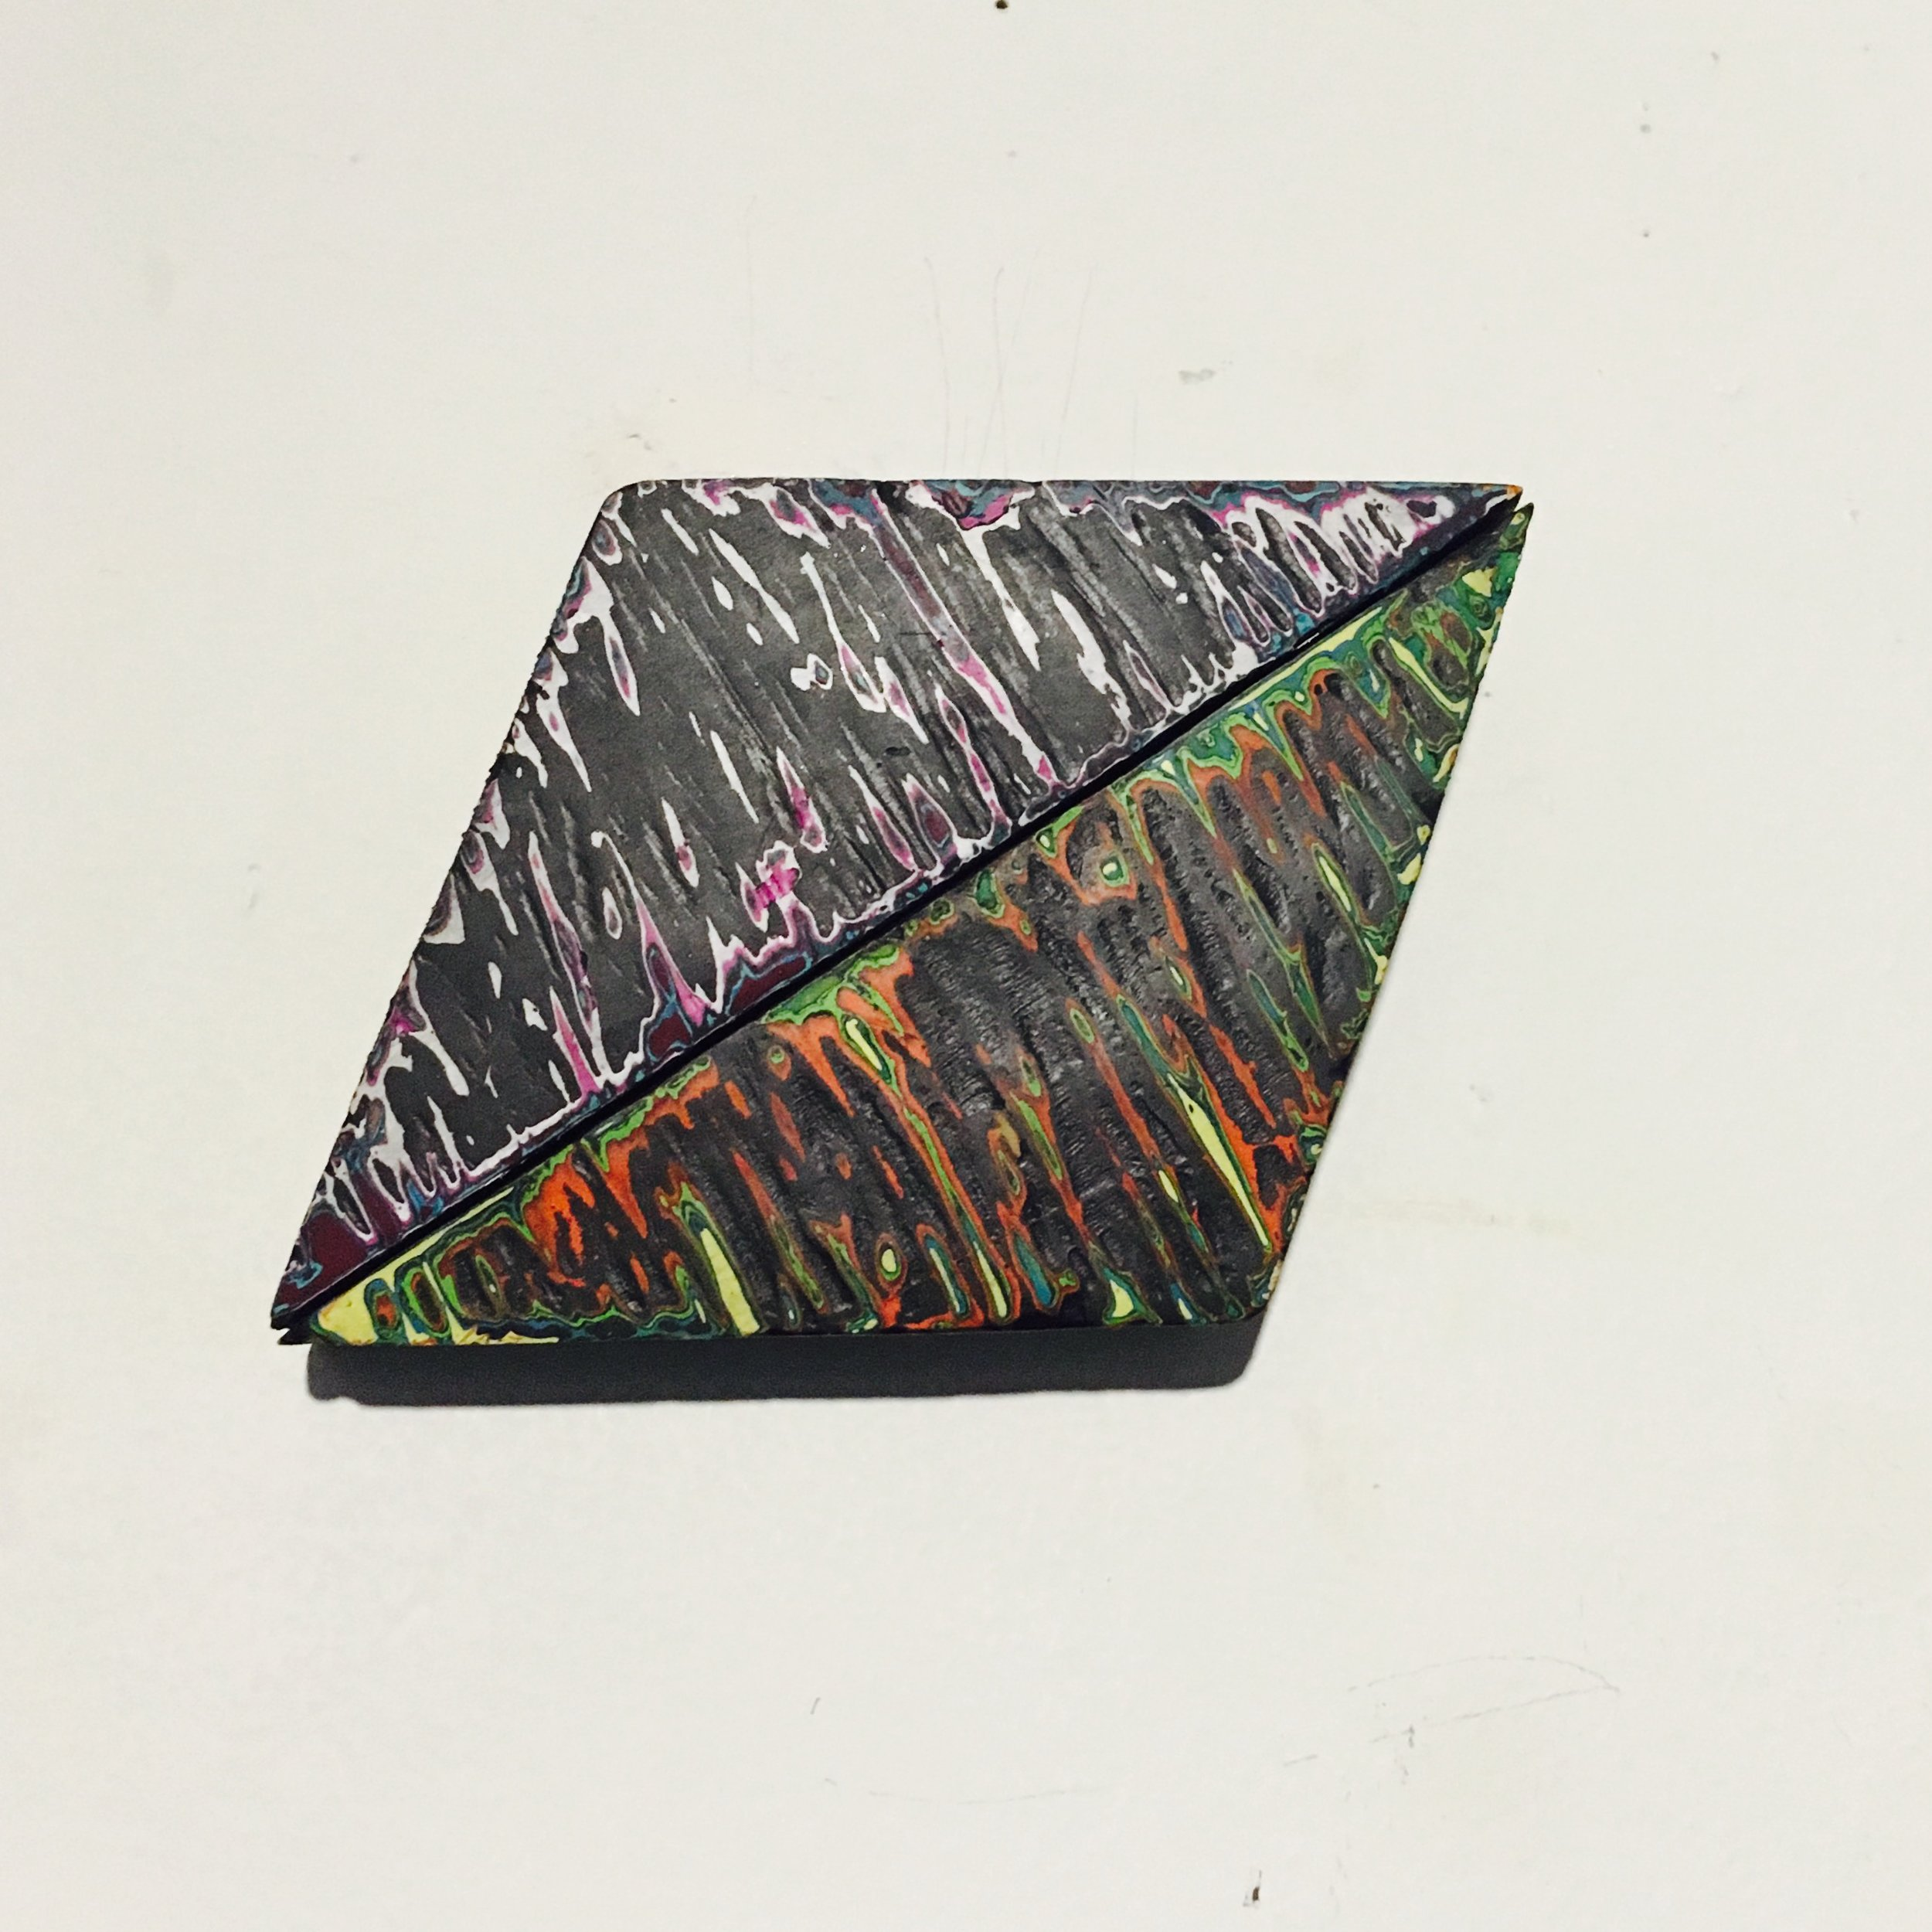 """Rhombus 5 Reduced Acrylic on Found Wood, Diptych 2015 3""""x4"""" SOLD"""